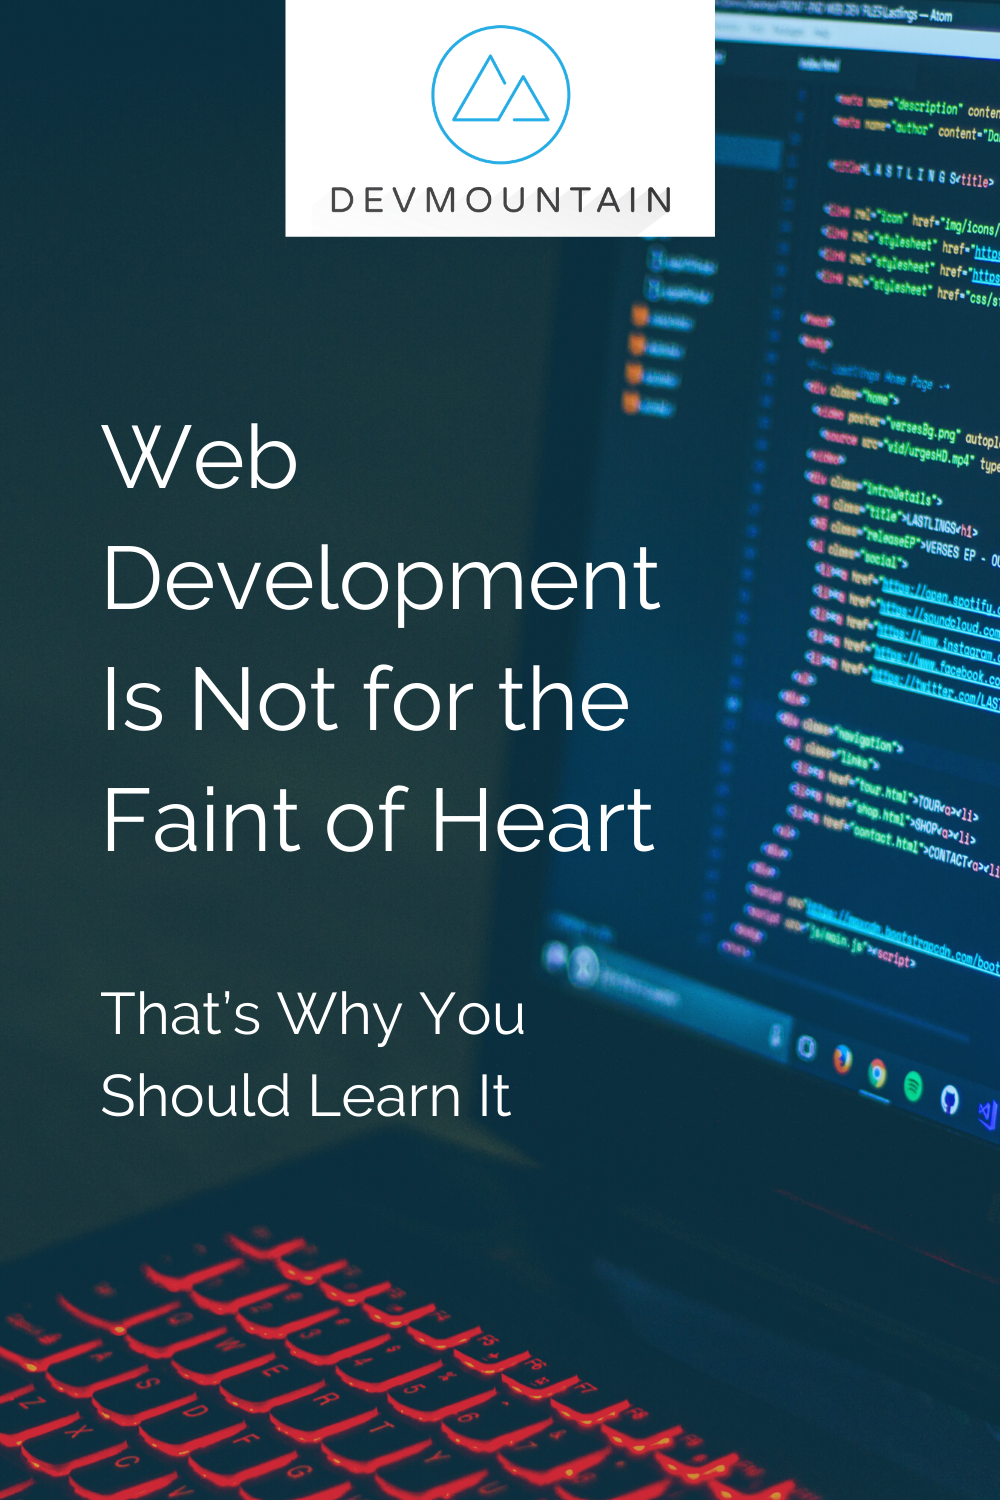 Web Development Is Not for the Faint of Heart, That's Why You Should Learn It